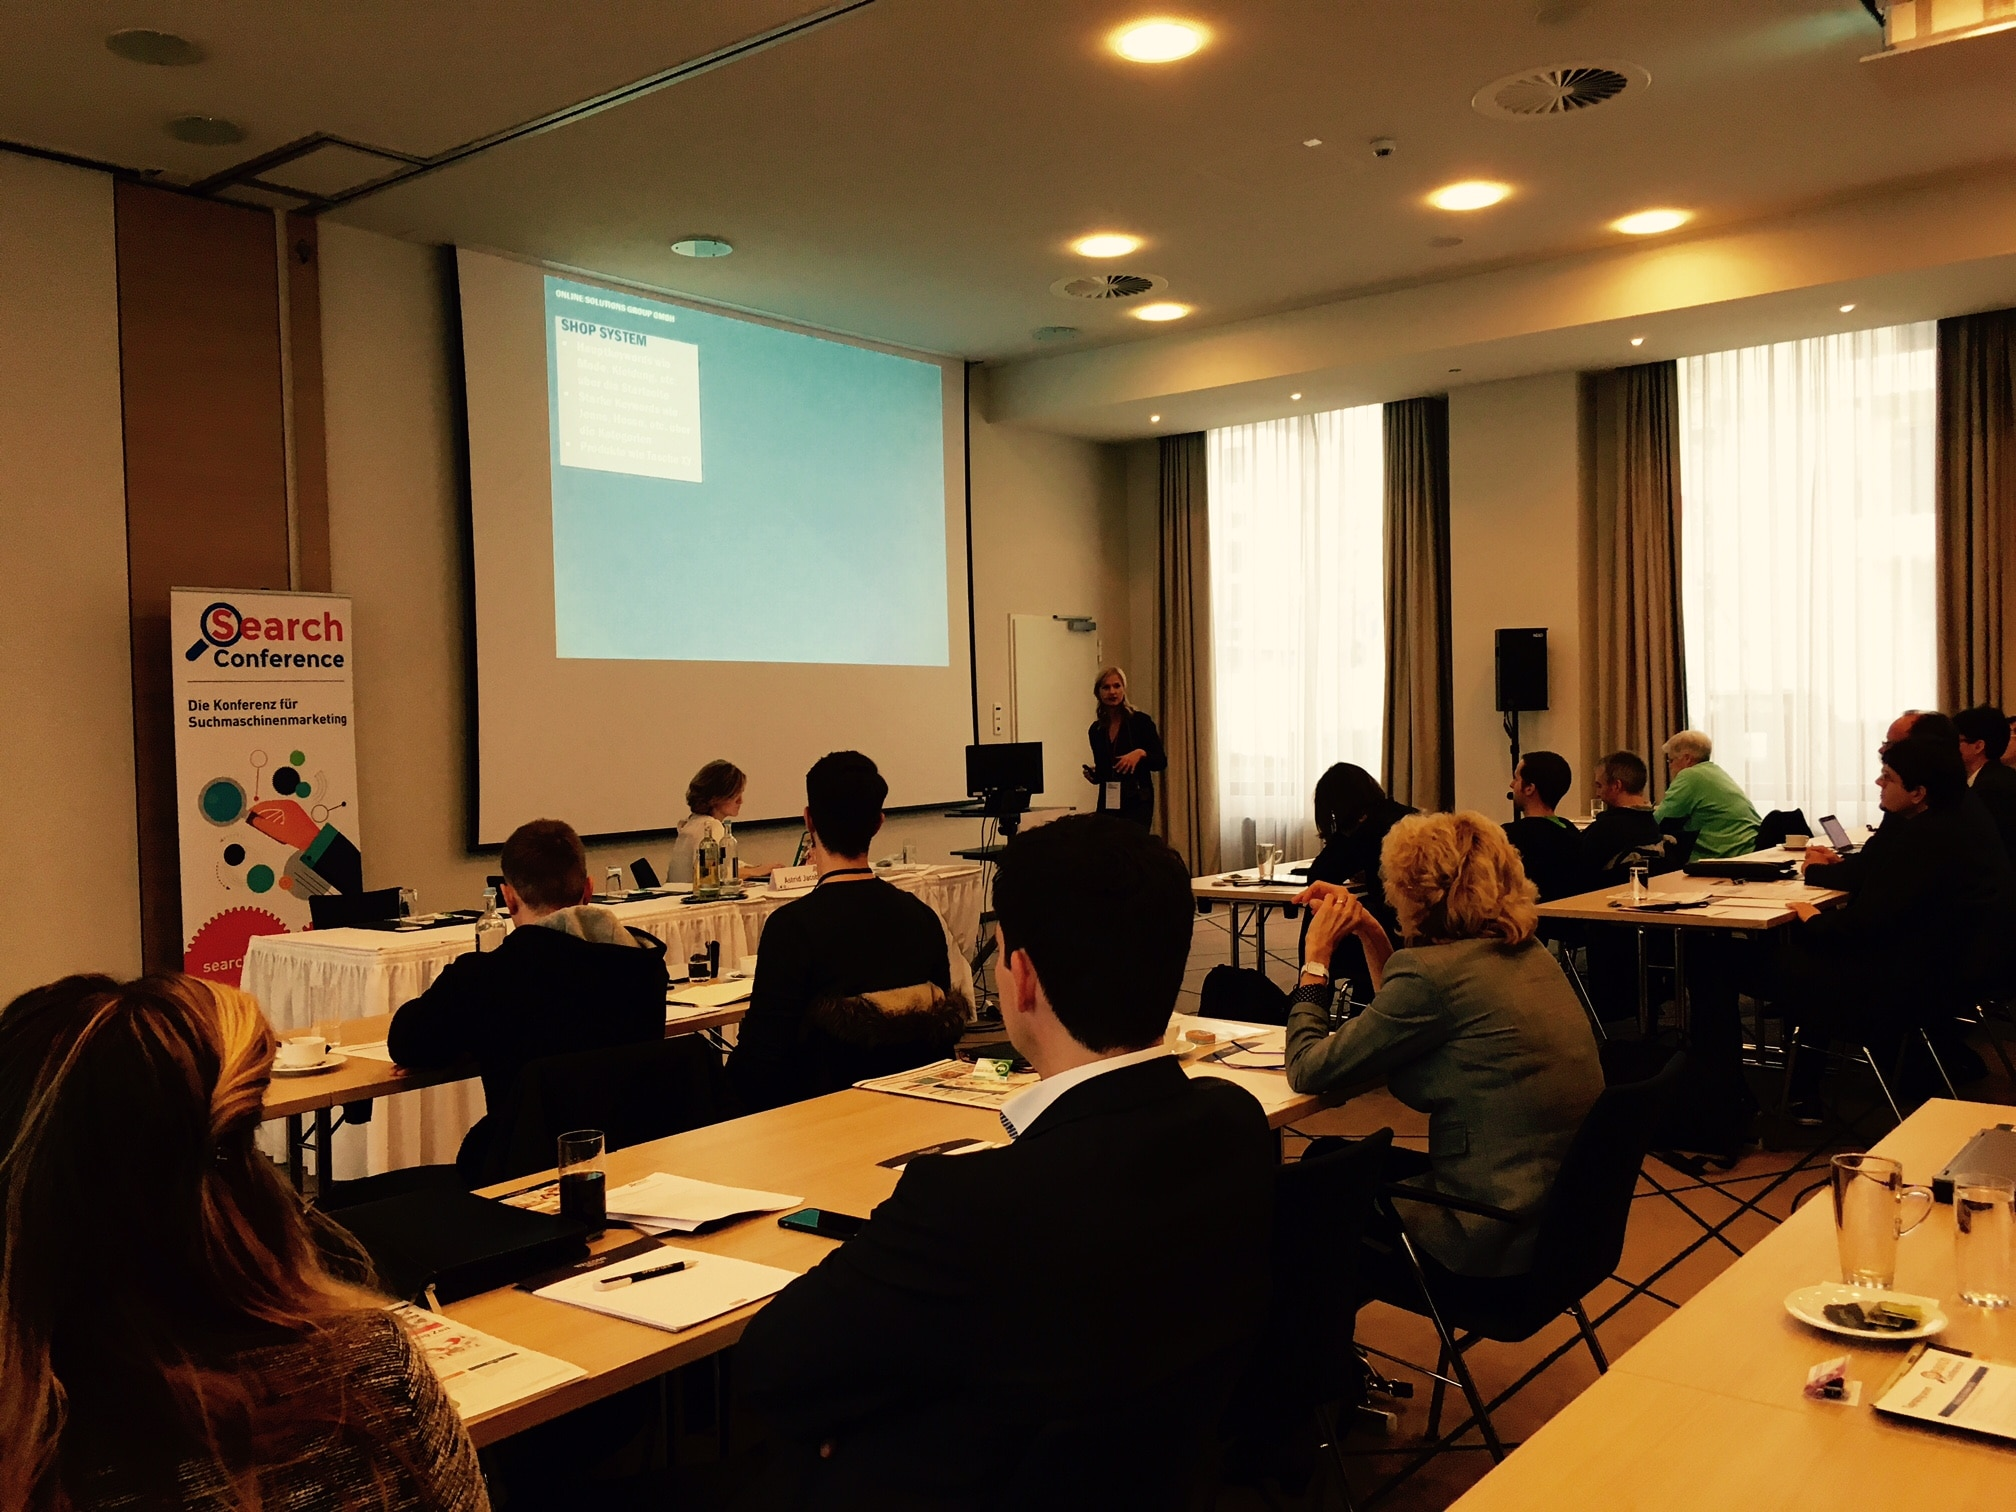 2015-11-24_Searchconference